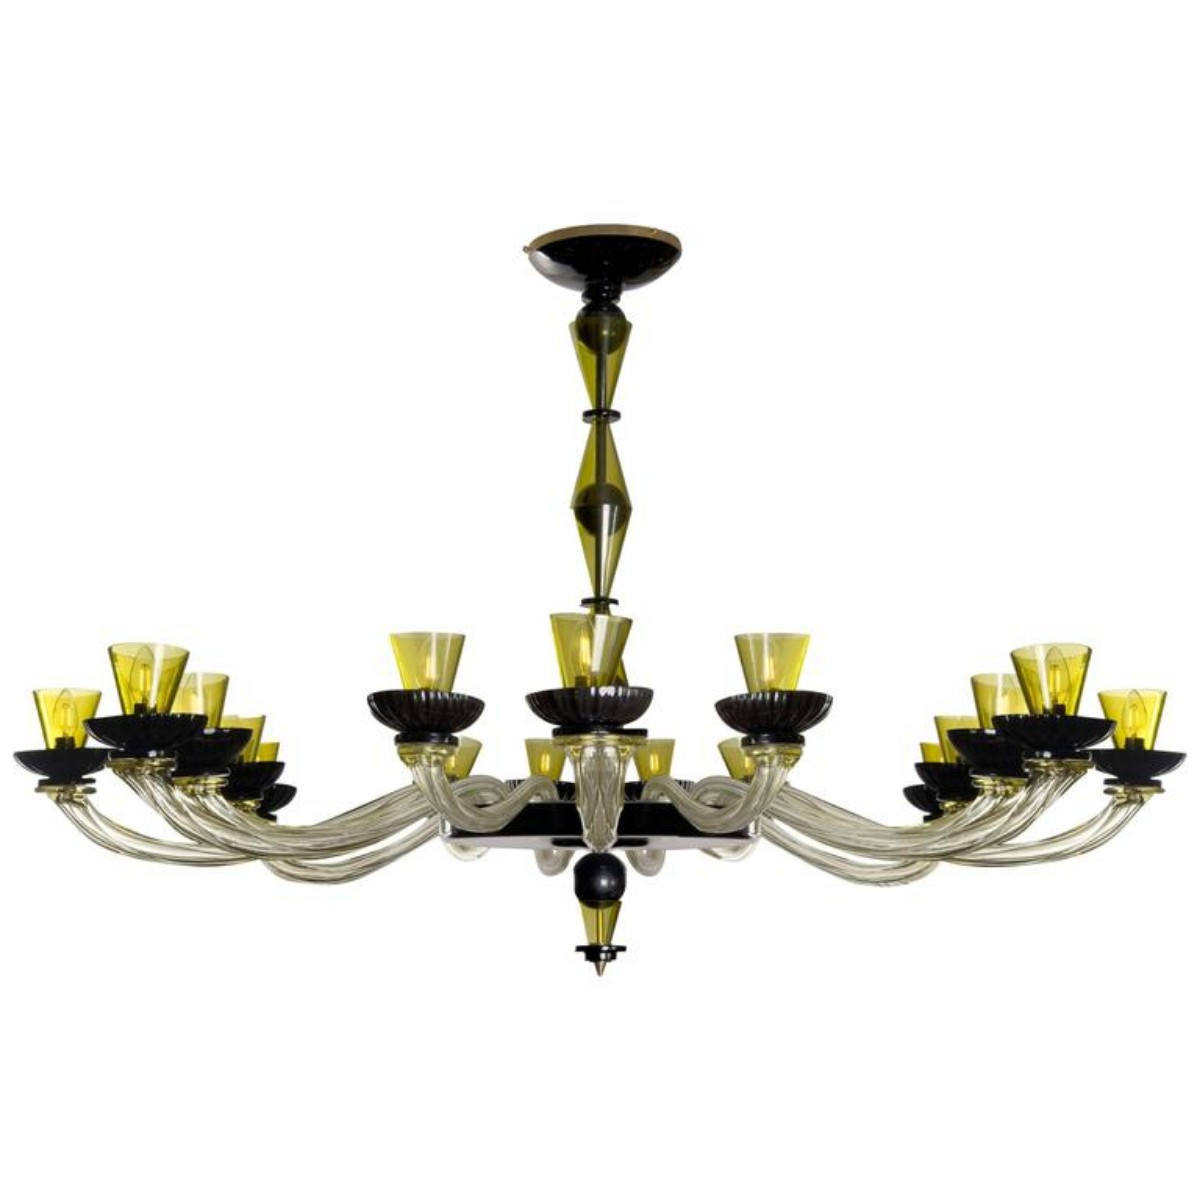 Murano Glass Chandelier Large: Large Cenedese Murano Glass Chandelier, Circa 1980